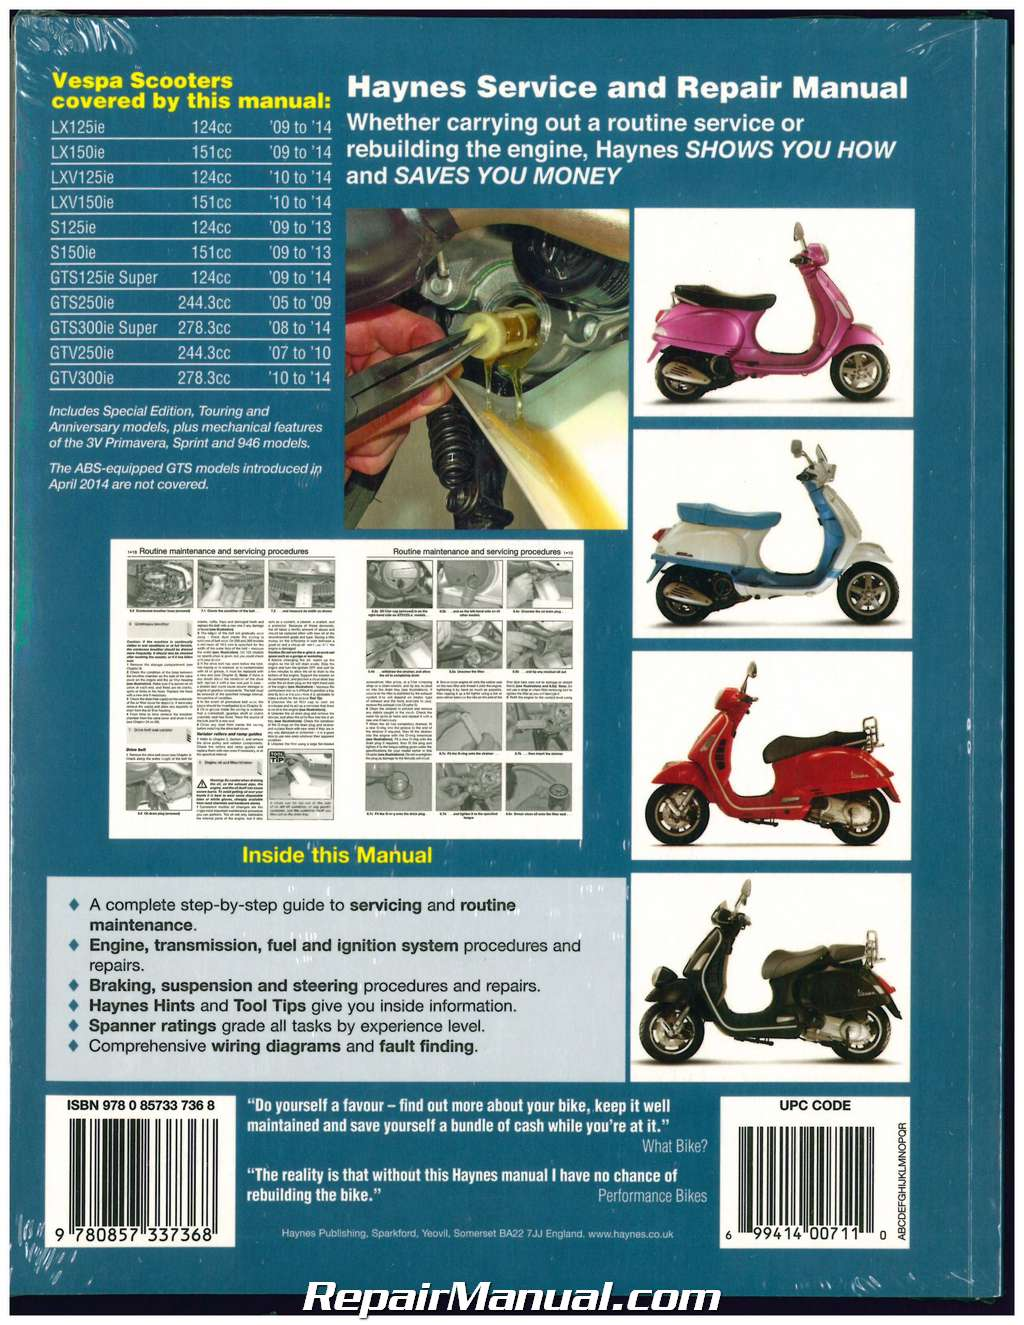 Piaggio Mp3 250 Ie 2006 2007 2008 2009 Repair Manual Auto Renault Workshop Service Wiring Diagram 2012 Pack Vespa Scooters Haynes 2005